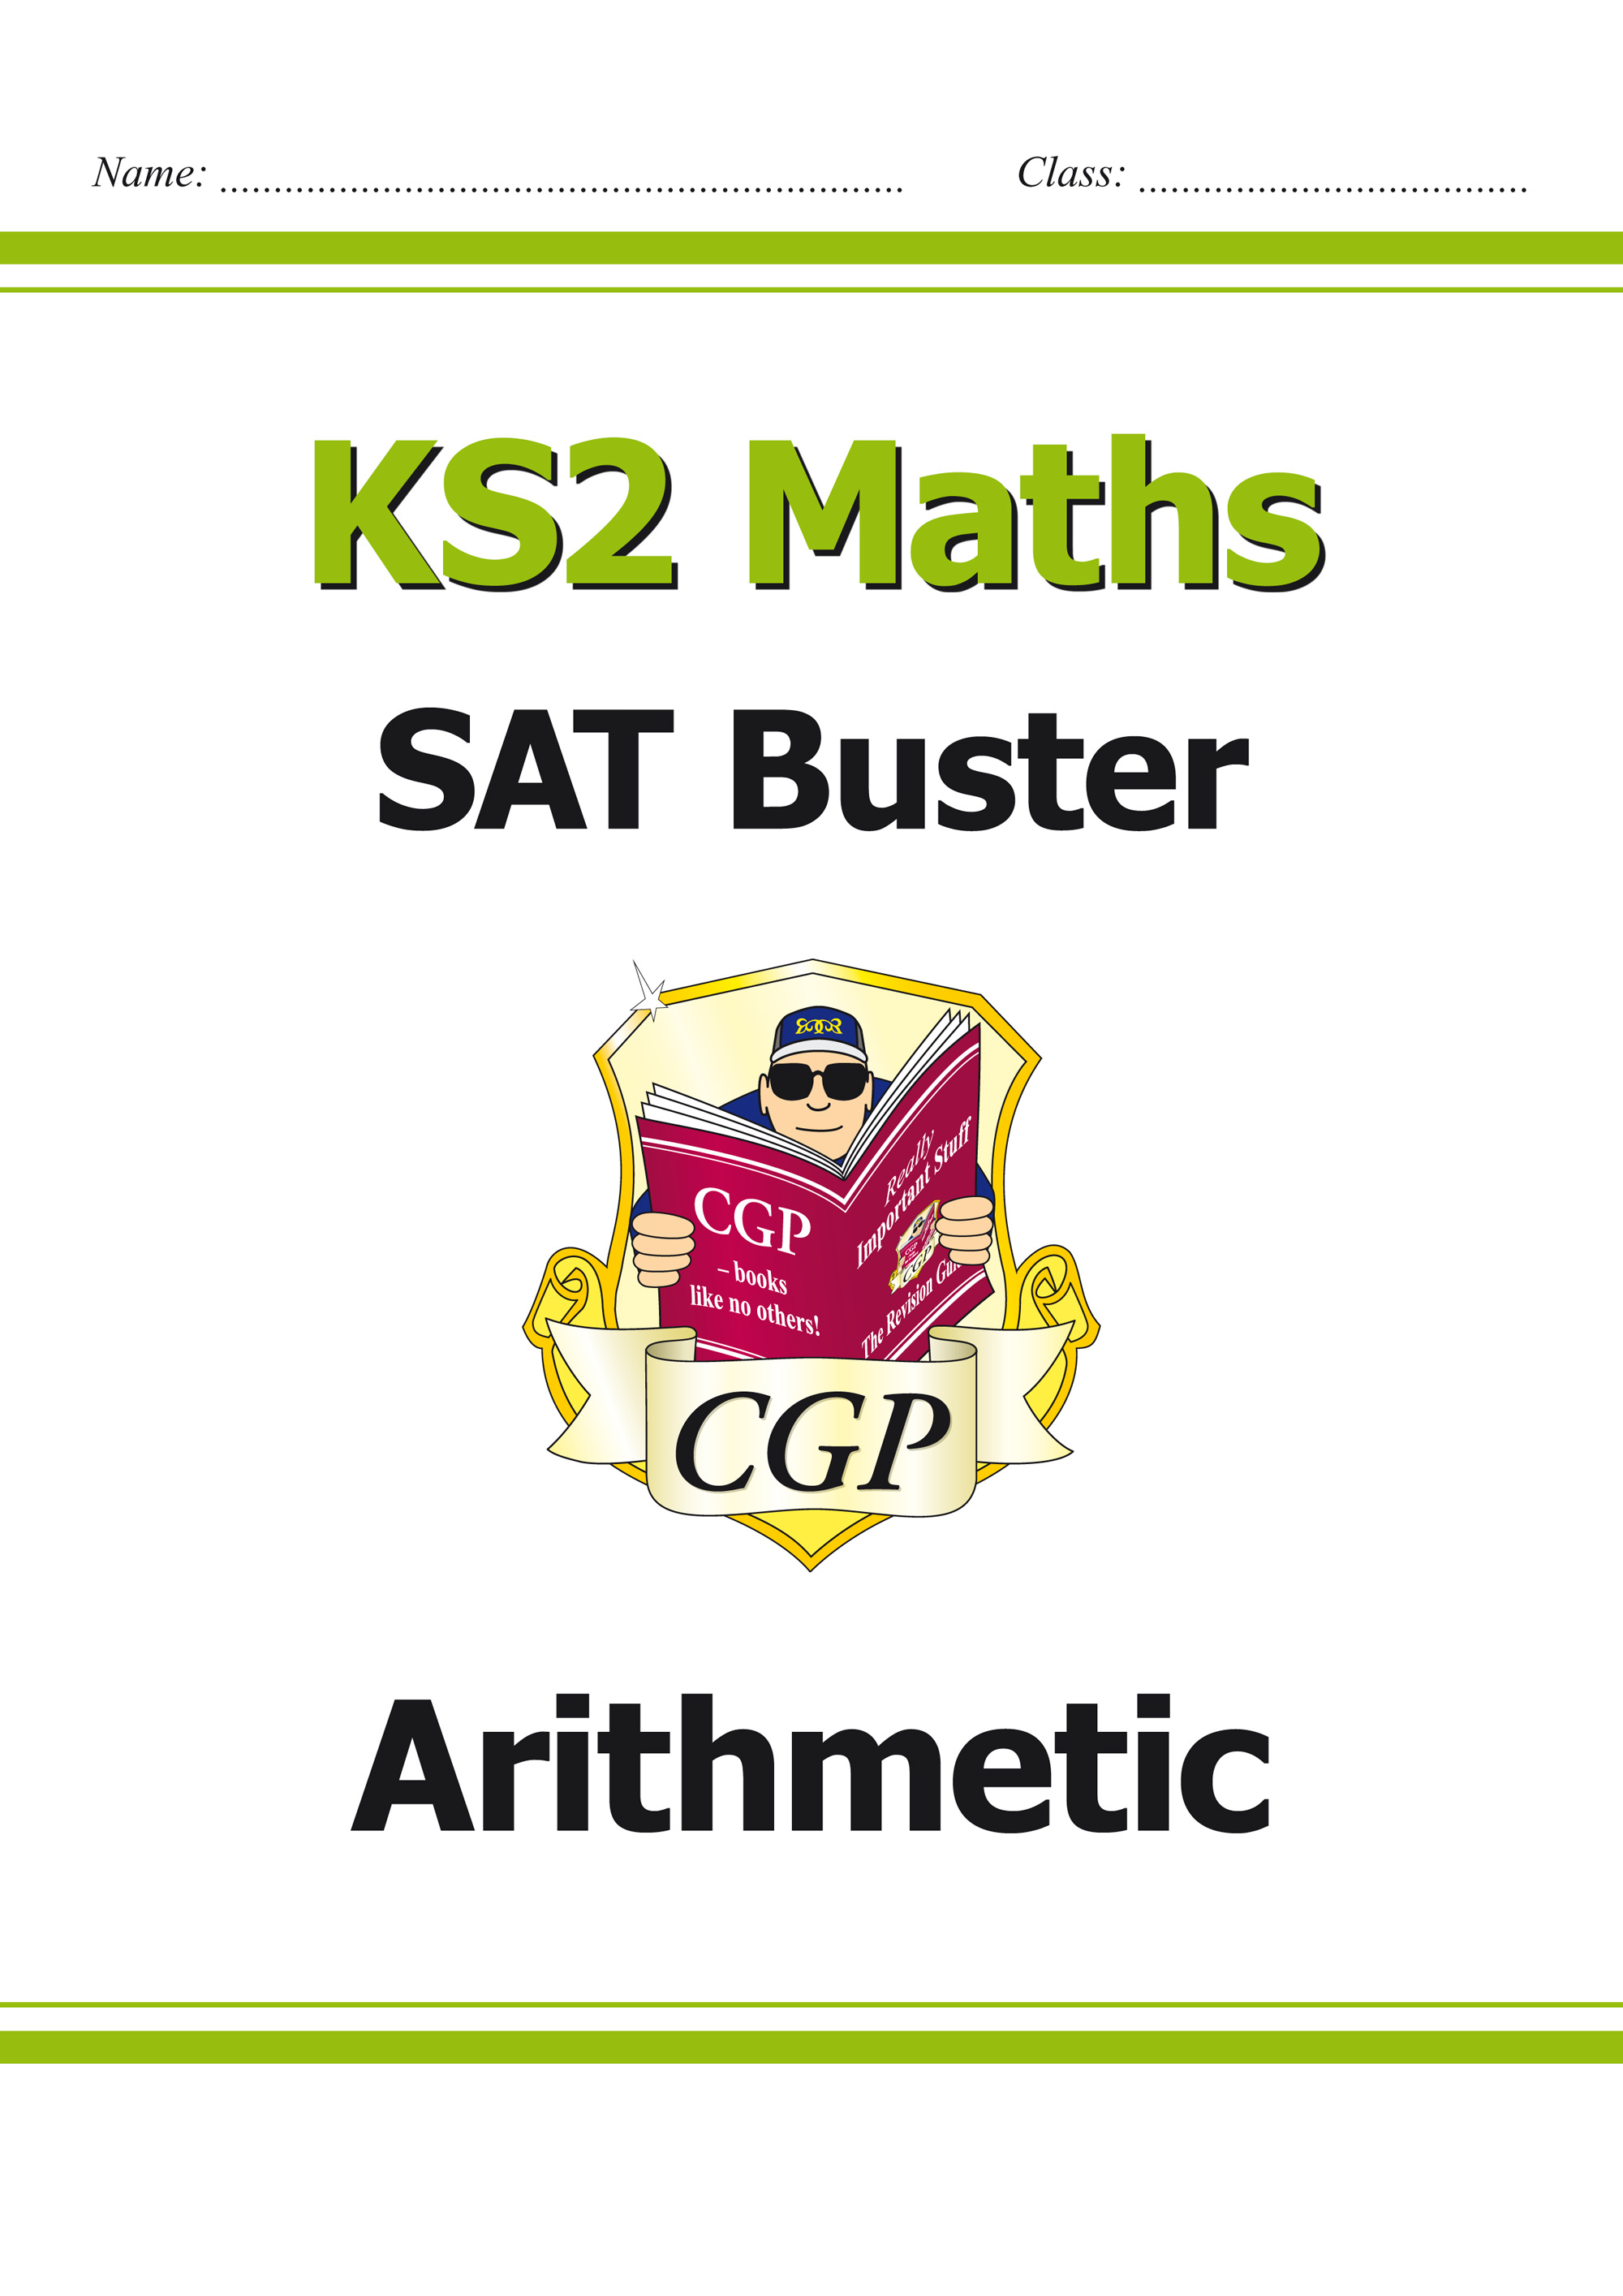 M6ARI23 - KS2 Maths SAT Buster: Arithmetic Book 1 (for the 2019 tests)